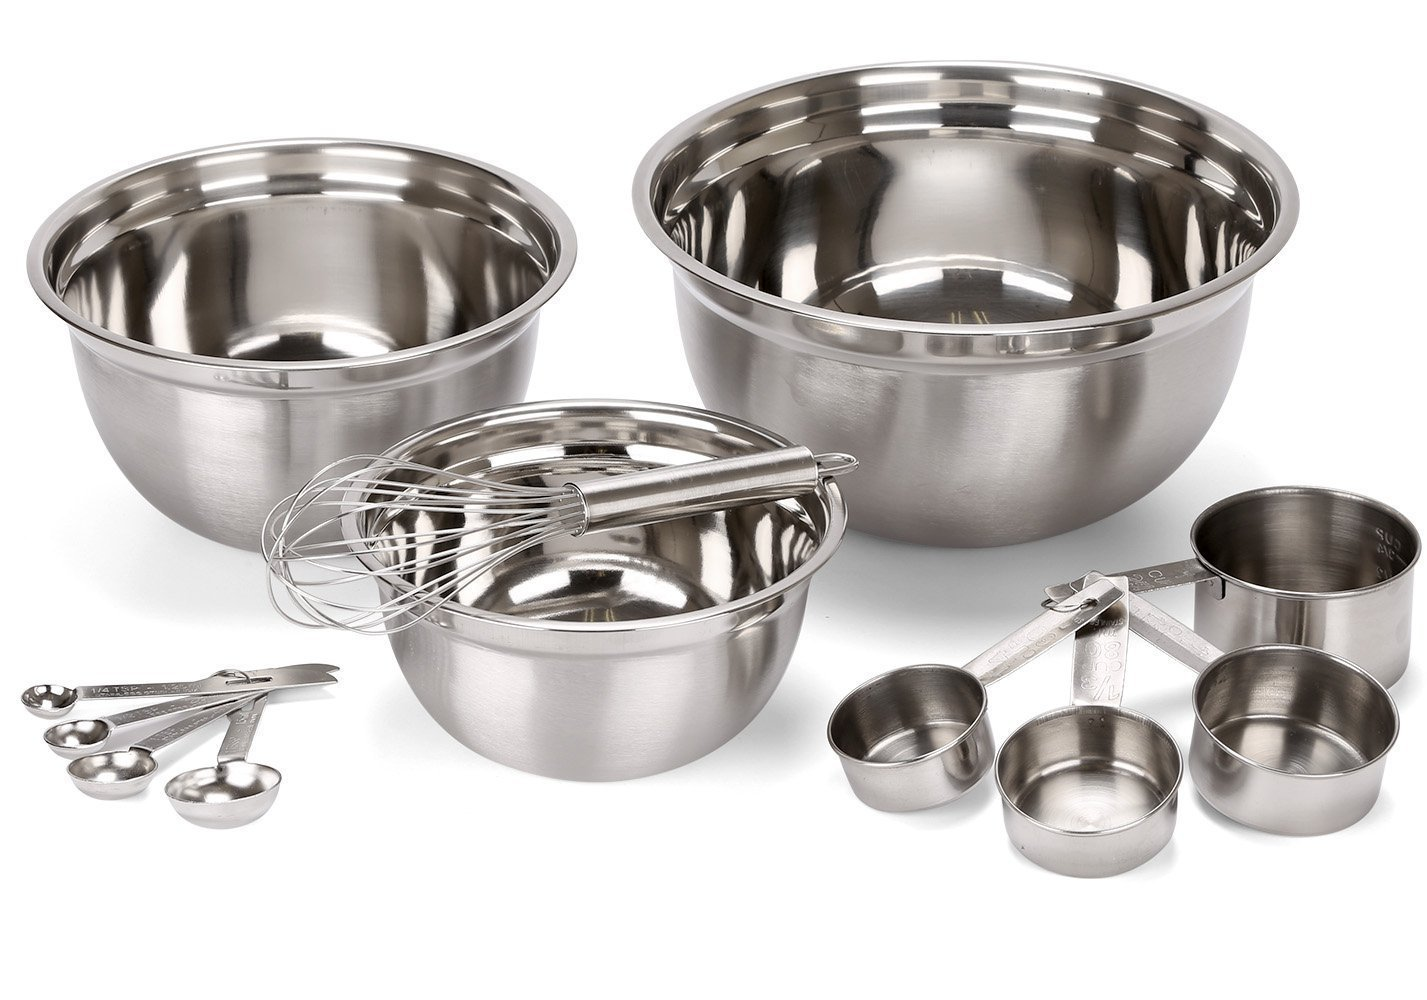 12 Piece Stainless Steel Mixing Bowls, Includes Measuring Cups, Measuring Spoons And Barrel Whisk..., By... by